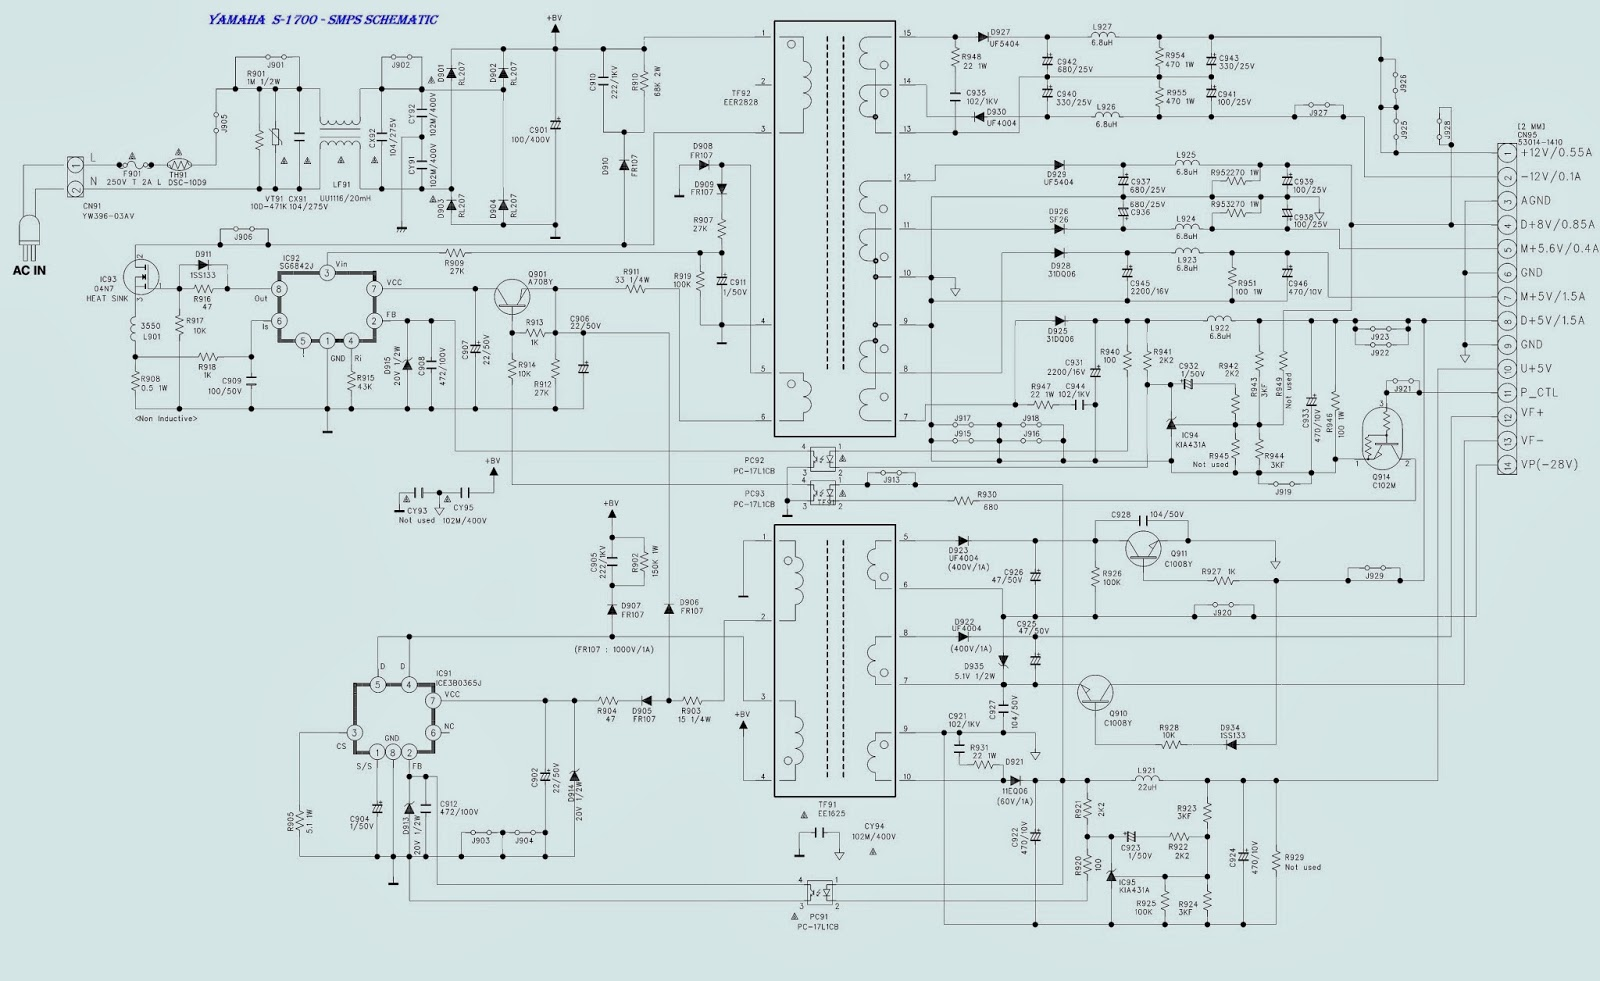 small resolution of dvd s1700 smps power supply schematic circuit diagram dvd 6000 power supply smps schematic circuit digram electro help